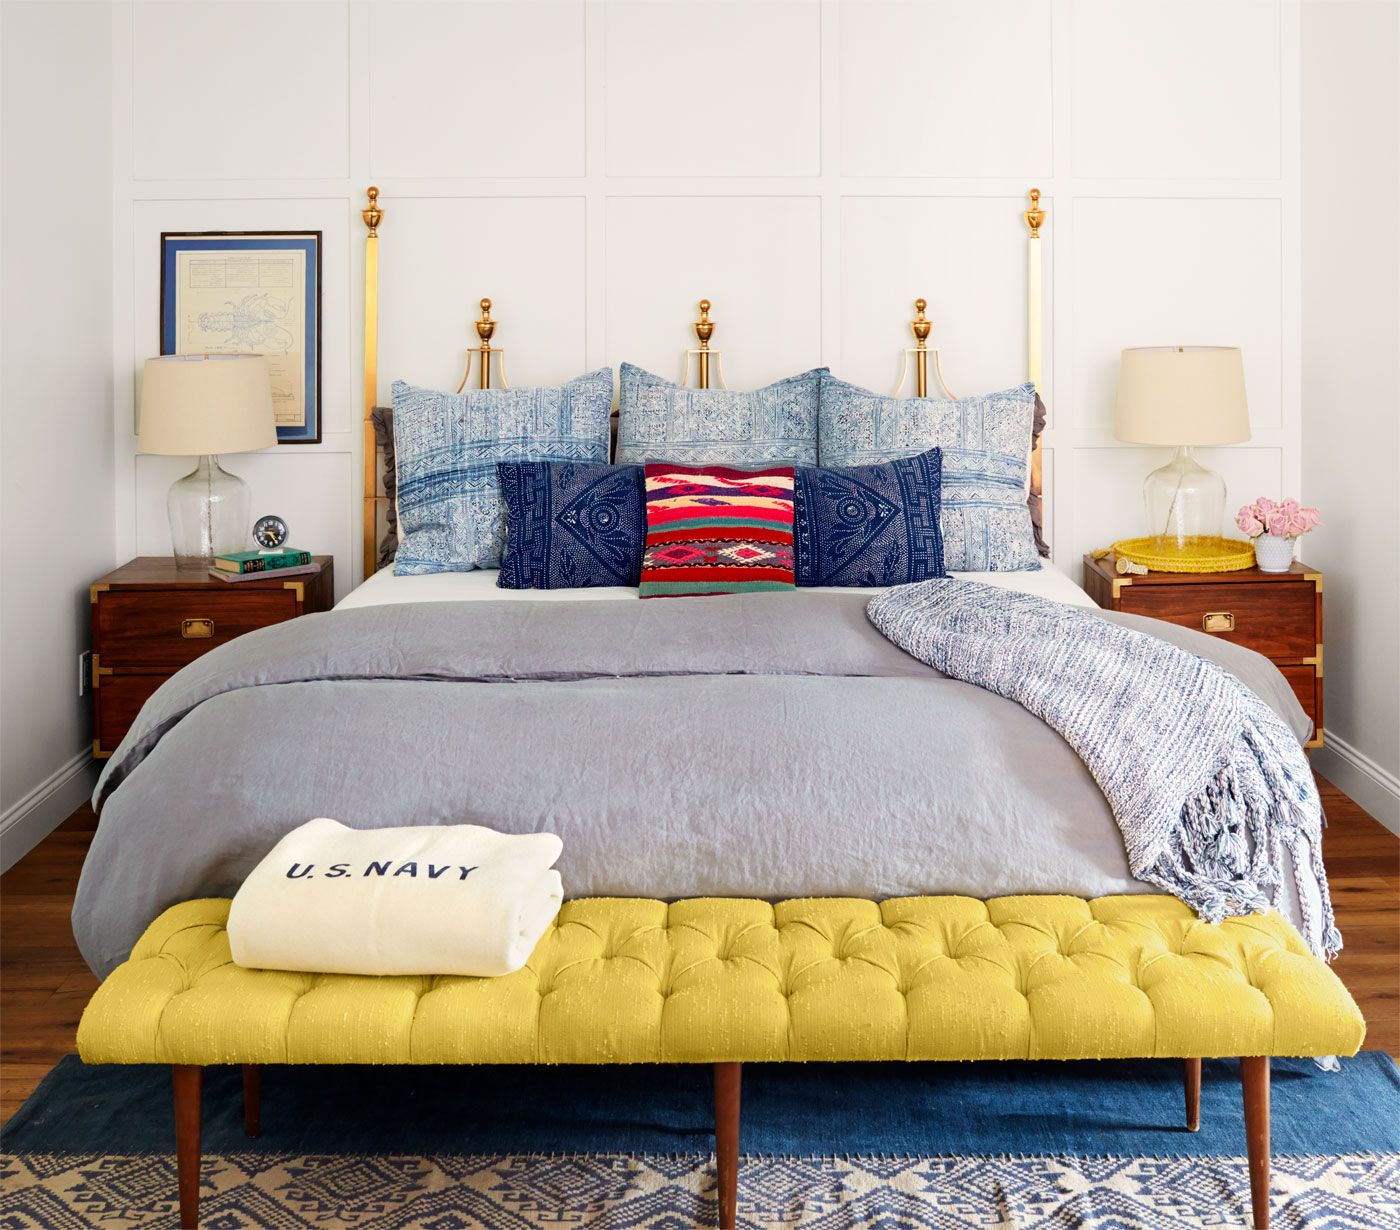 The find a s brass hollywood regency headboard that